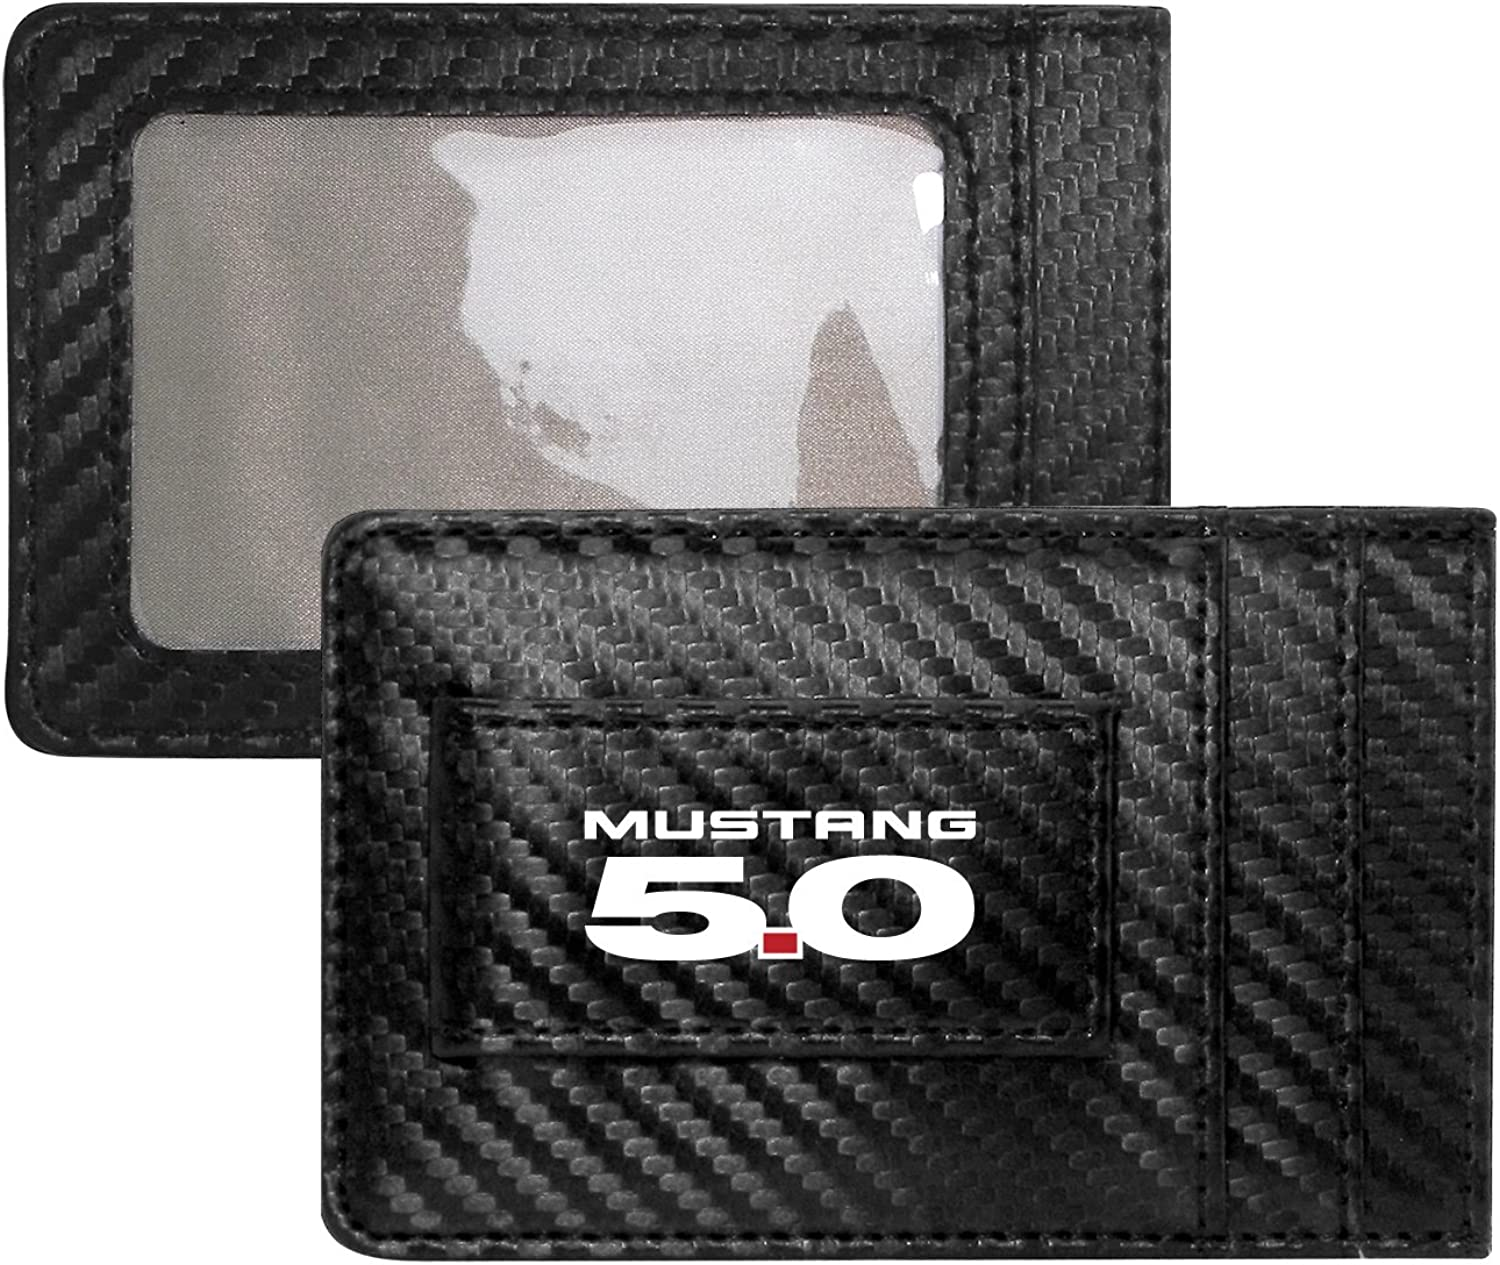 Ford Mustang 5.0 Carbon Fiber Style Minimalist Leather Slim Wallet RFID Block with Money Clip